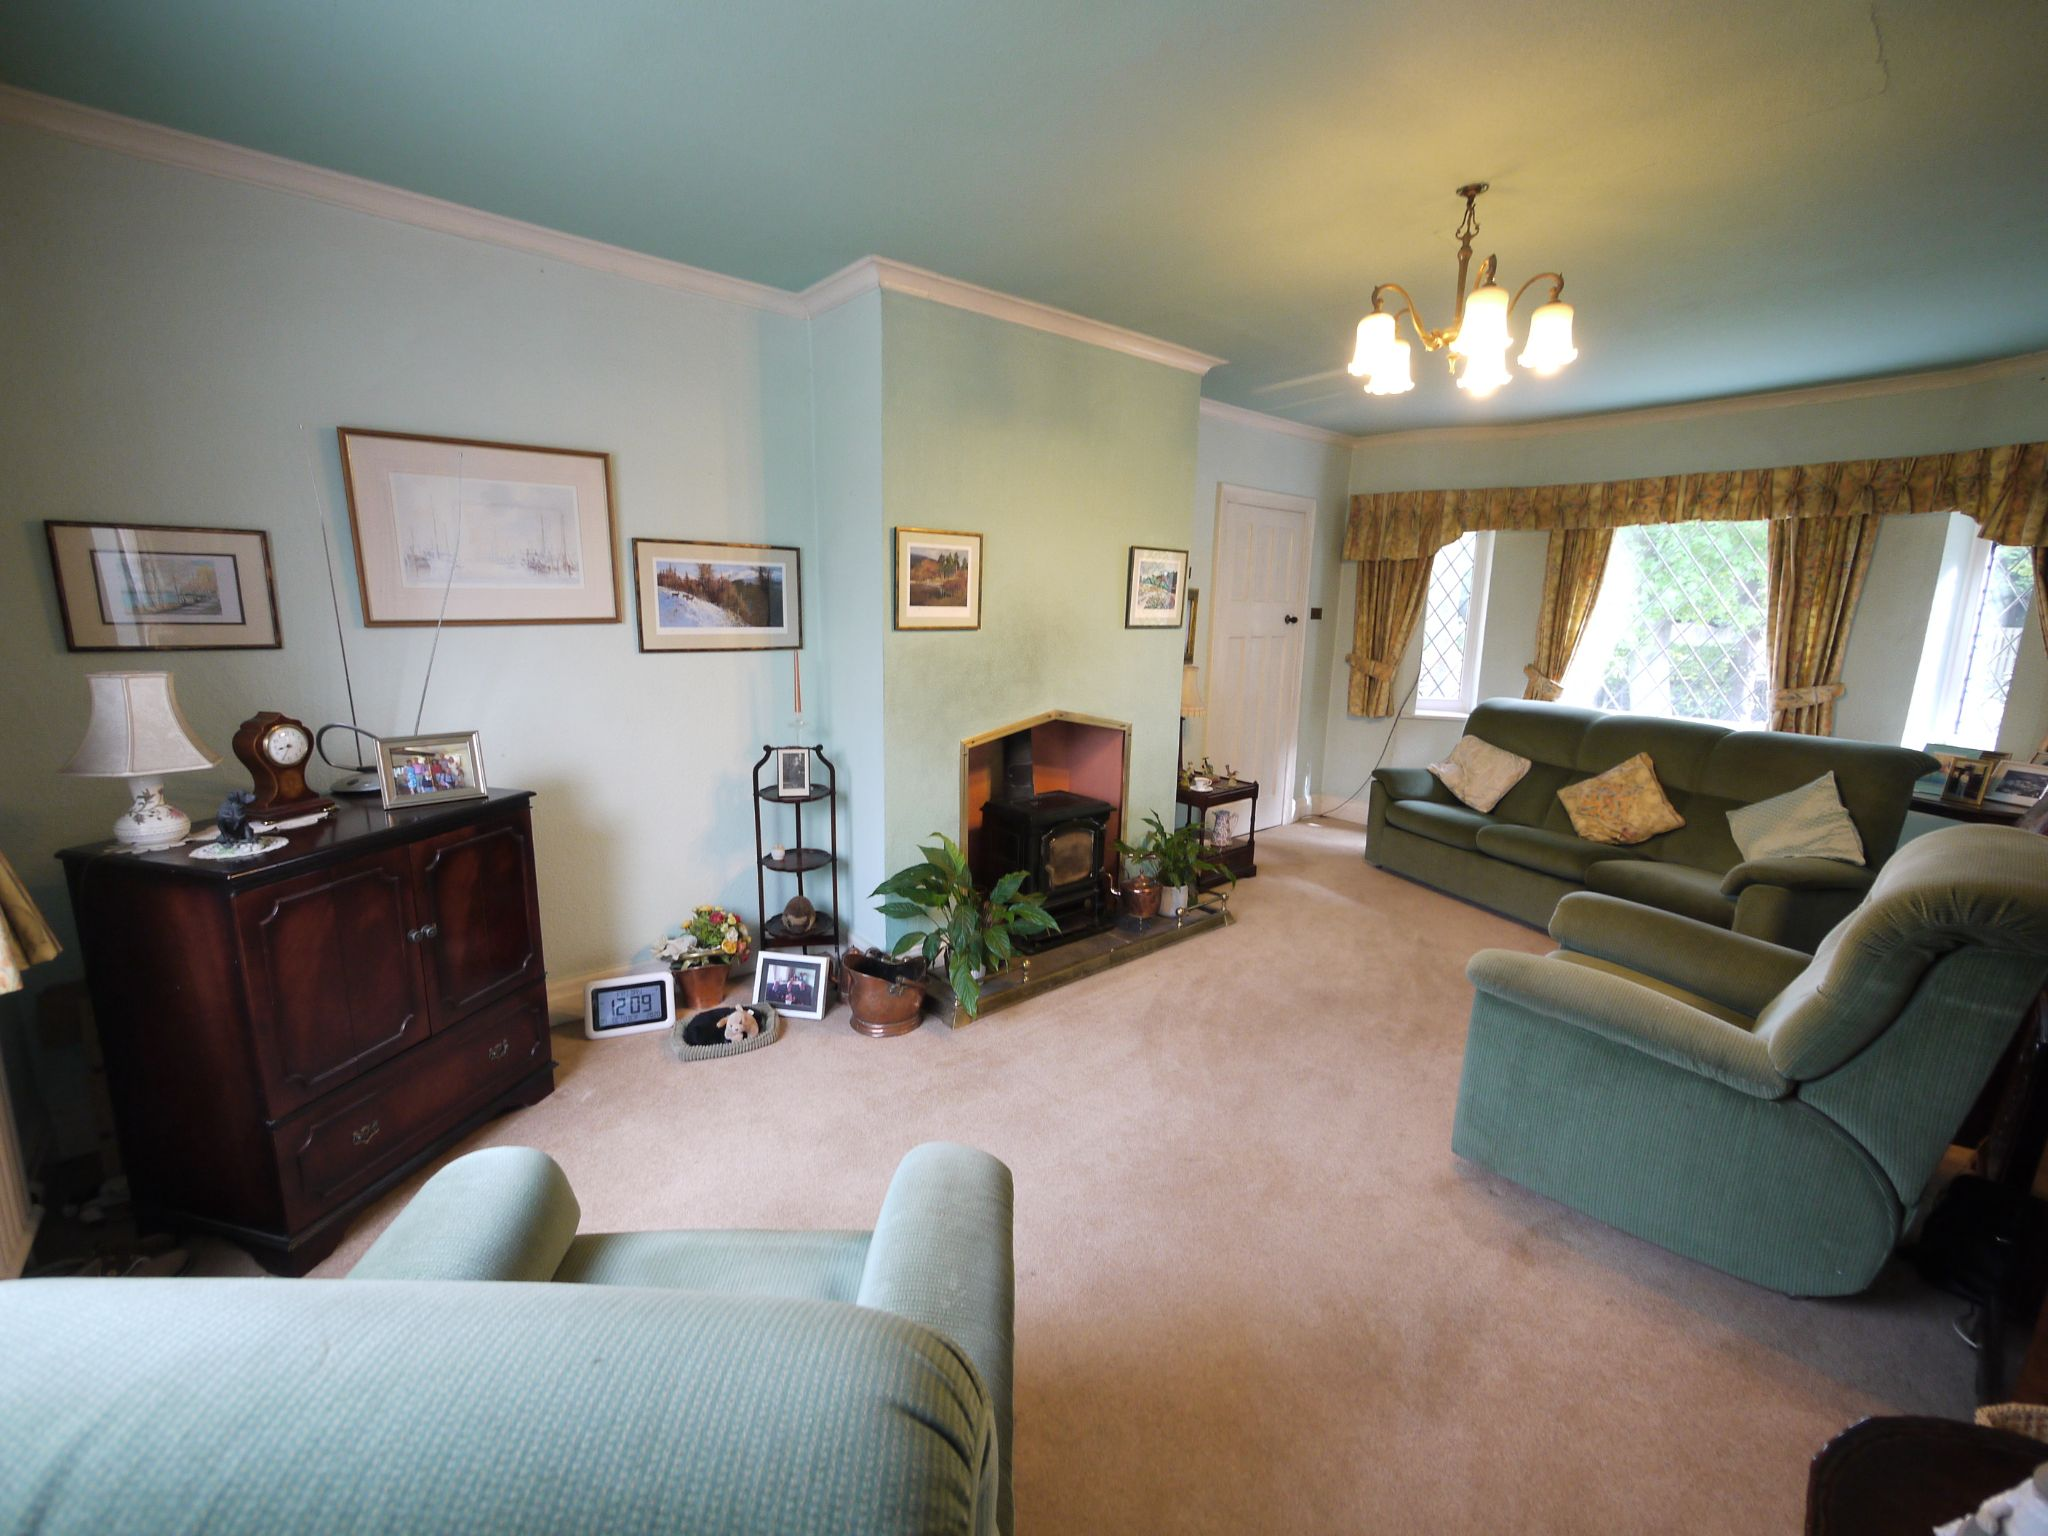 3 bedroom detached house SSTC in Brighouse - Lounge 2.